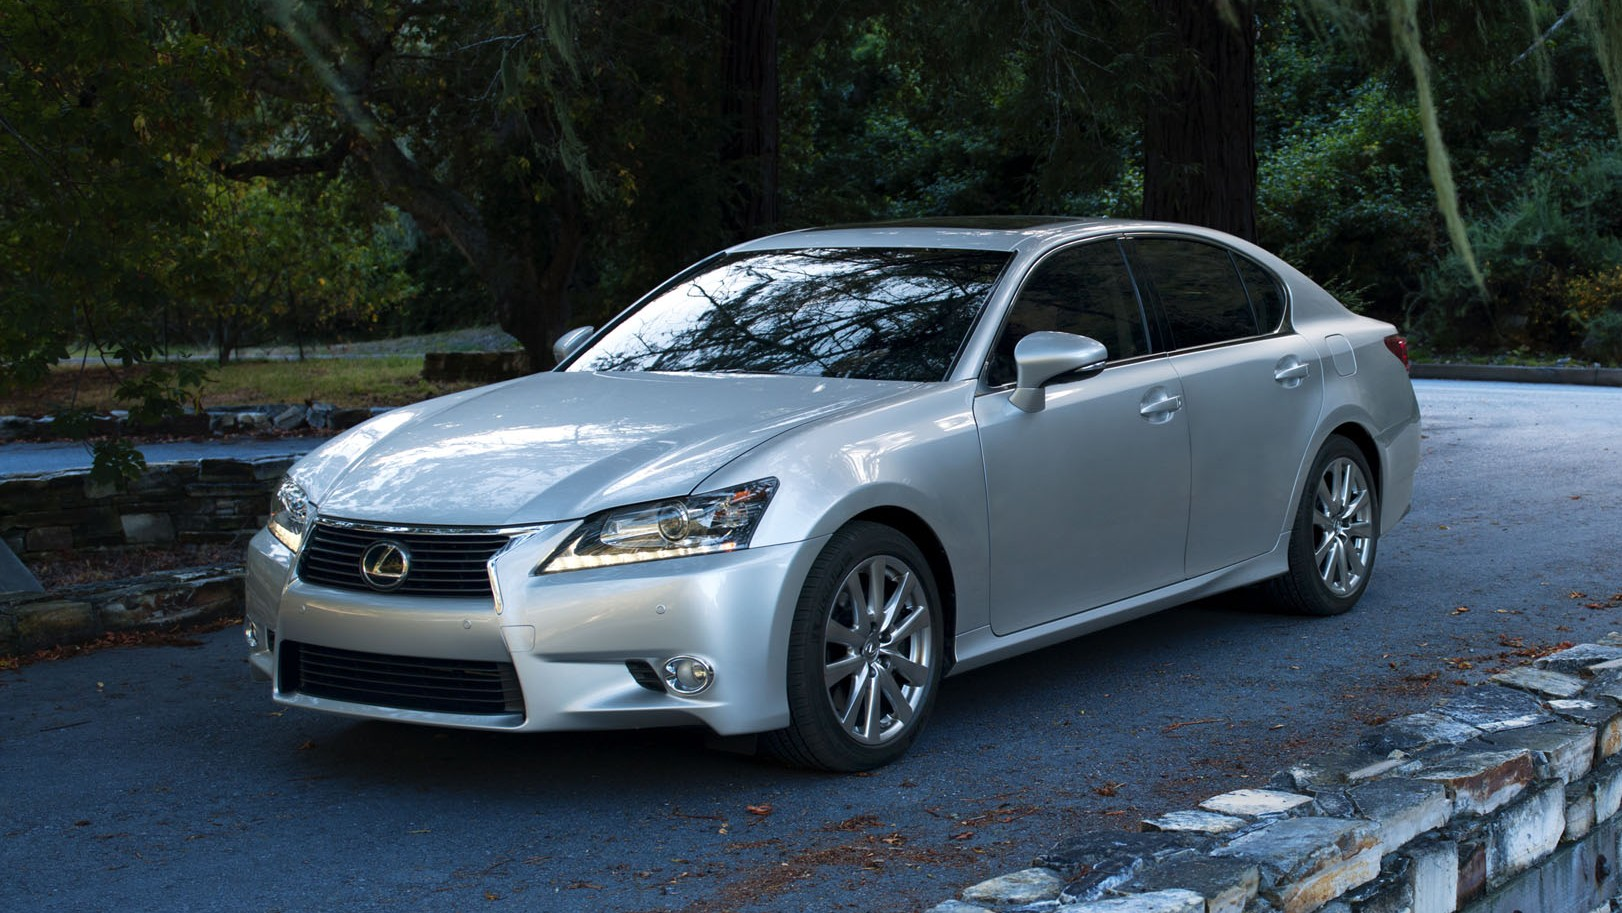 Alfa Romeo Dallas >> 2015 Lexus GS 350 Review, Ratings, Specs, Prices, and Photos - The Car Connection